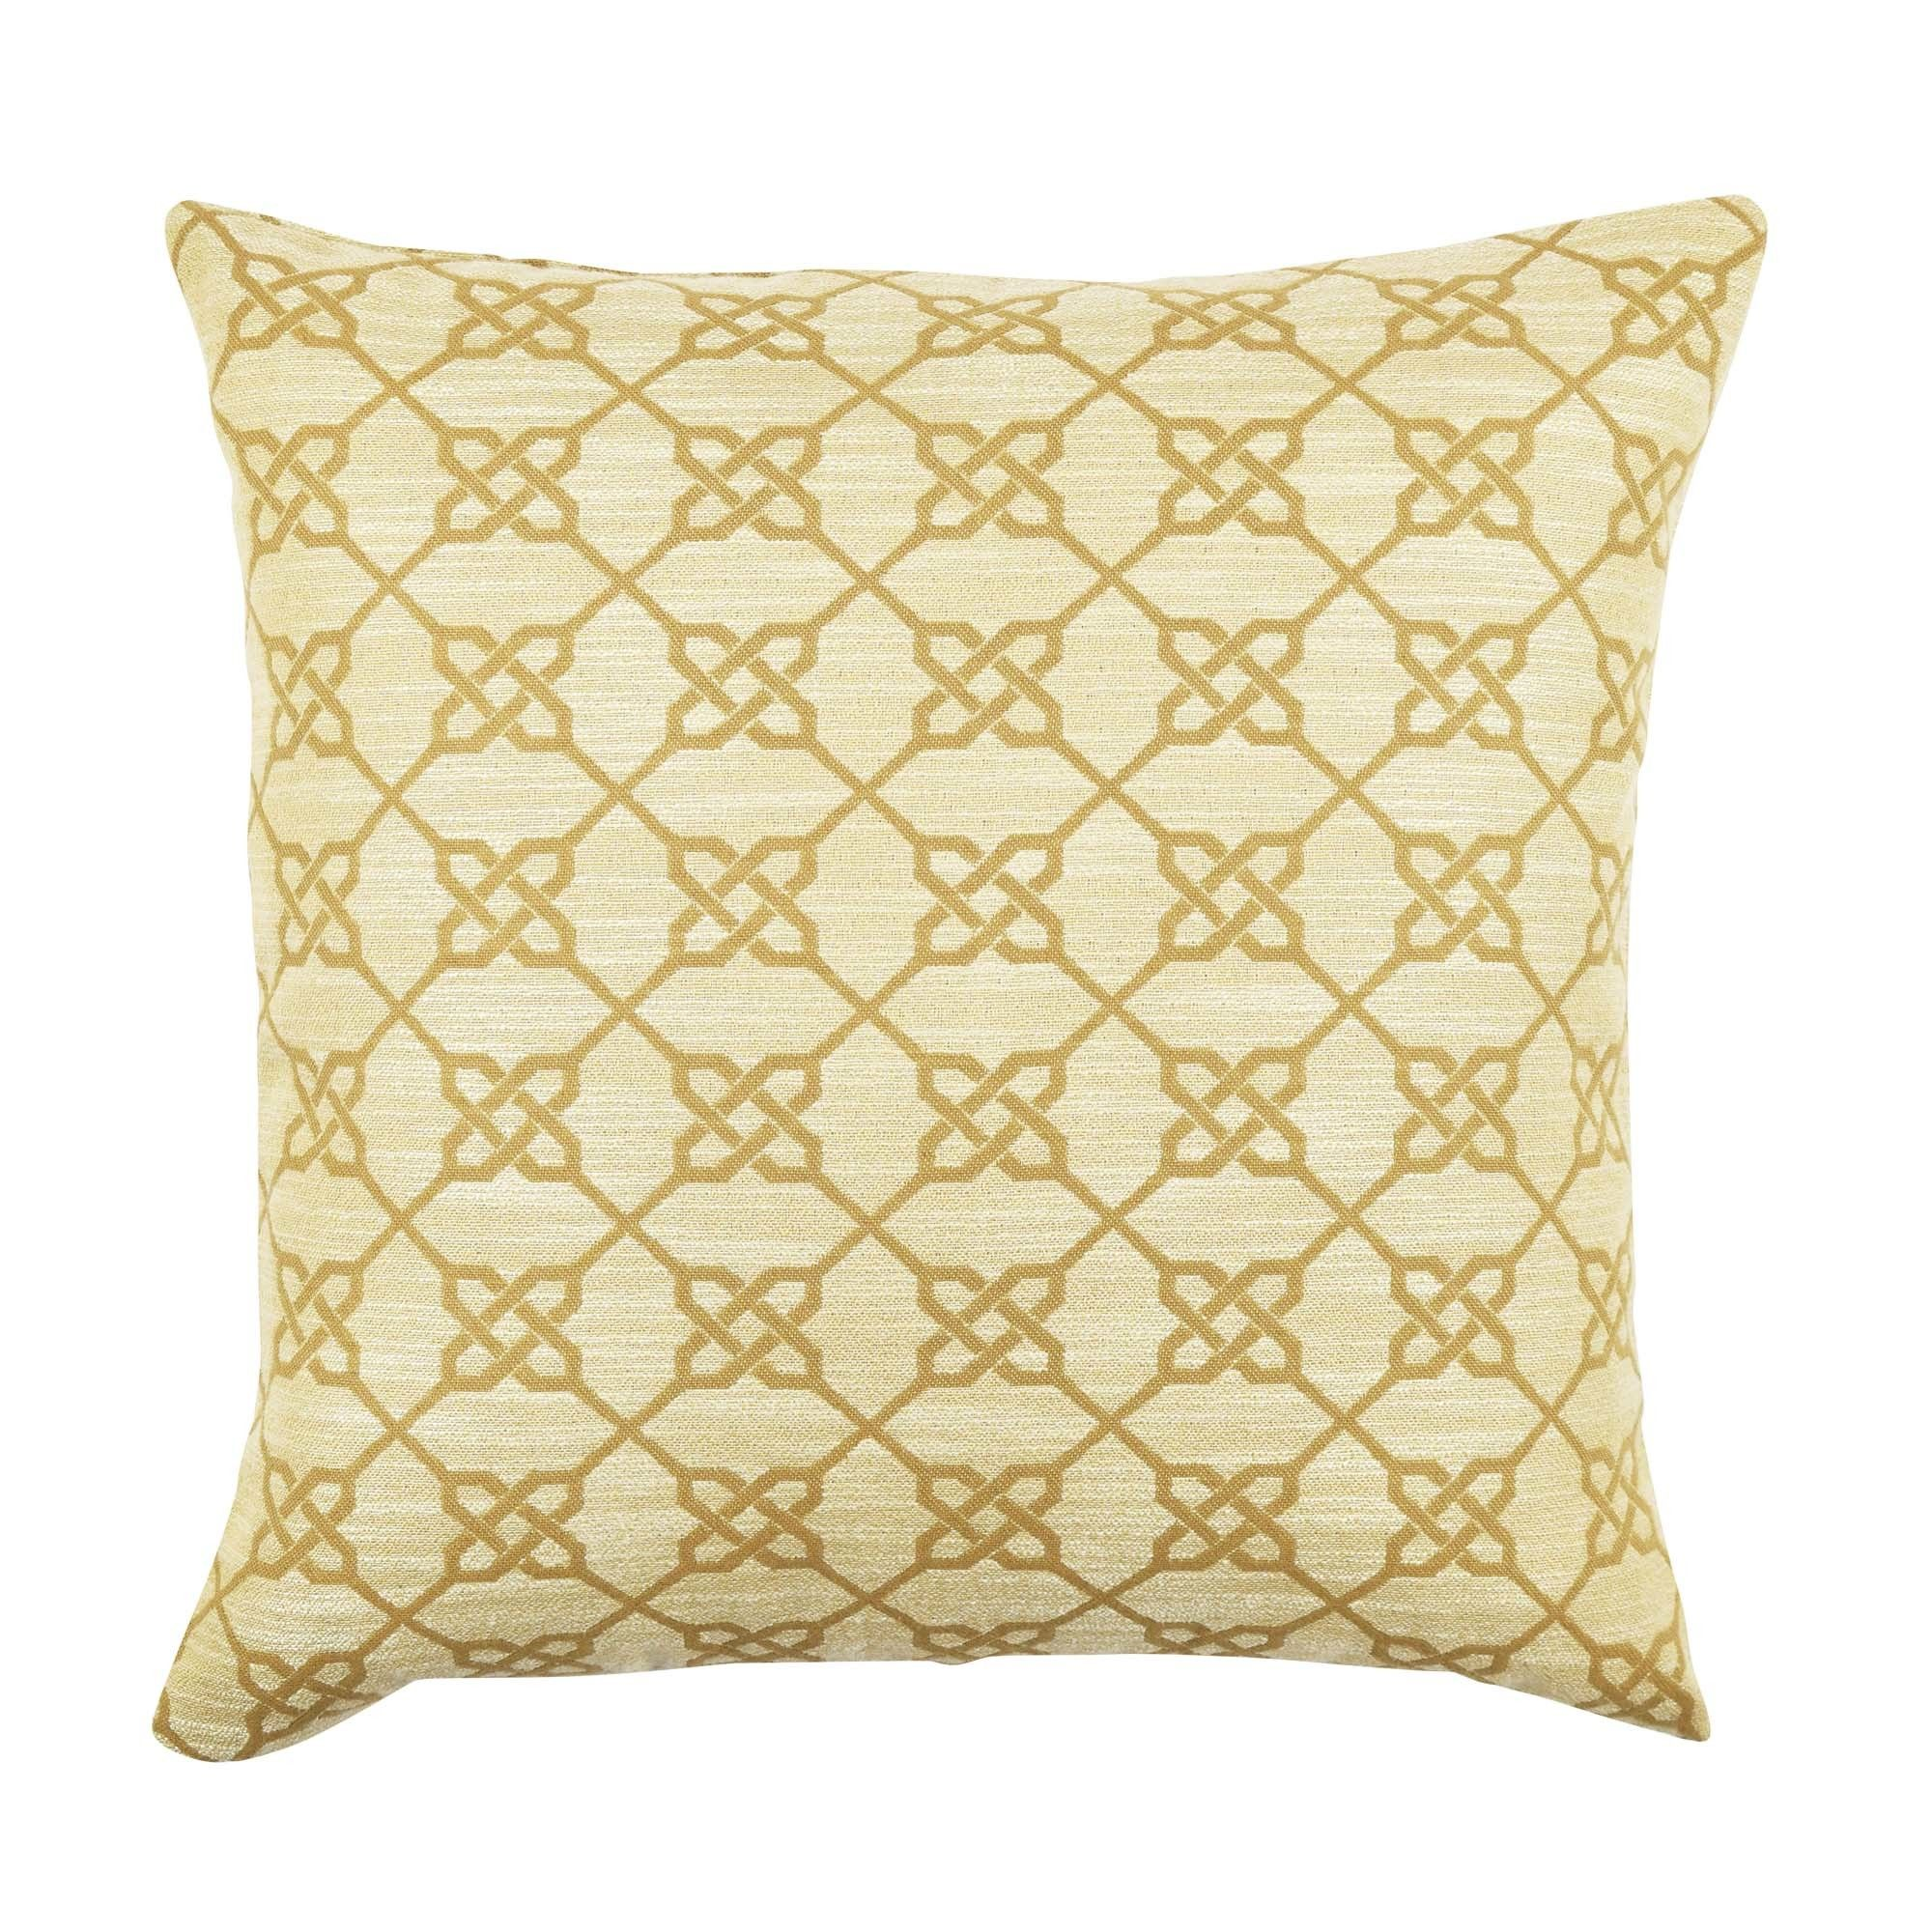 Ogee Pattern Cotton Throw Pillow